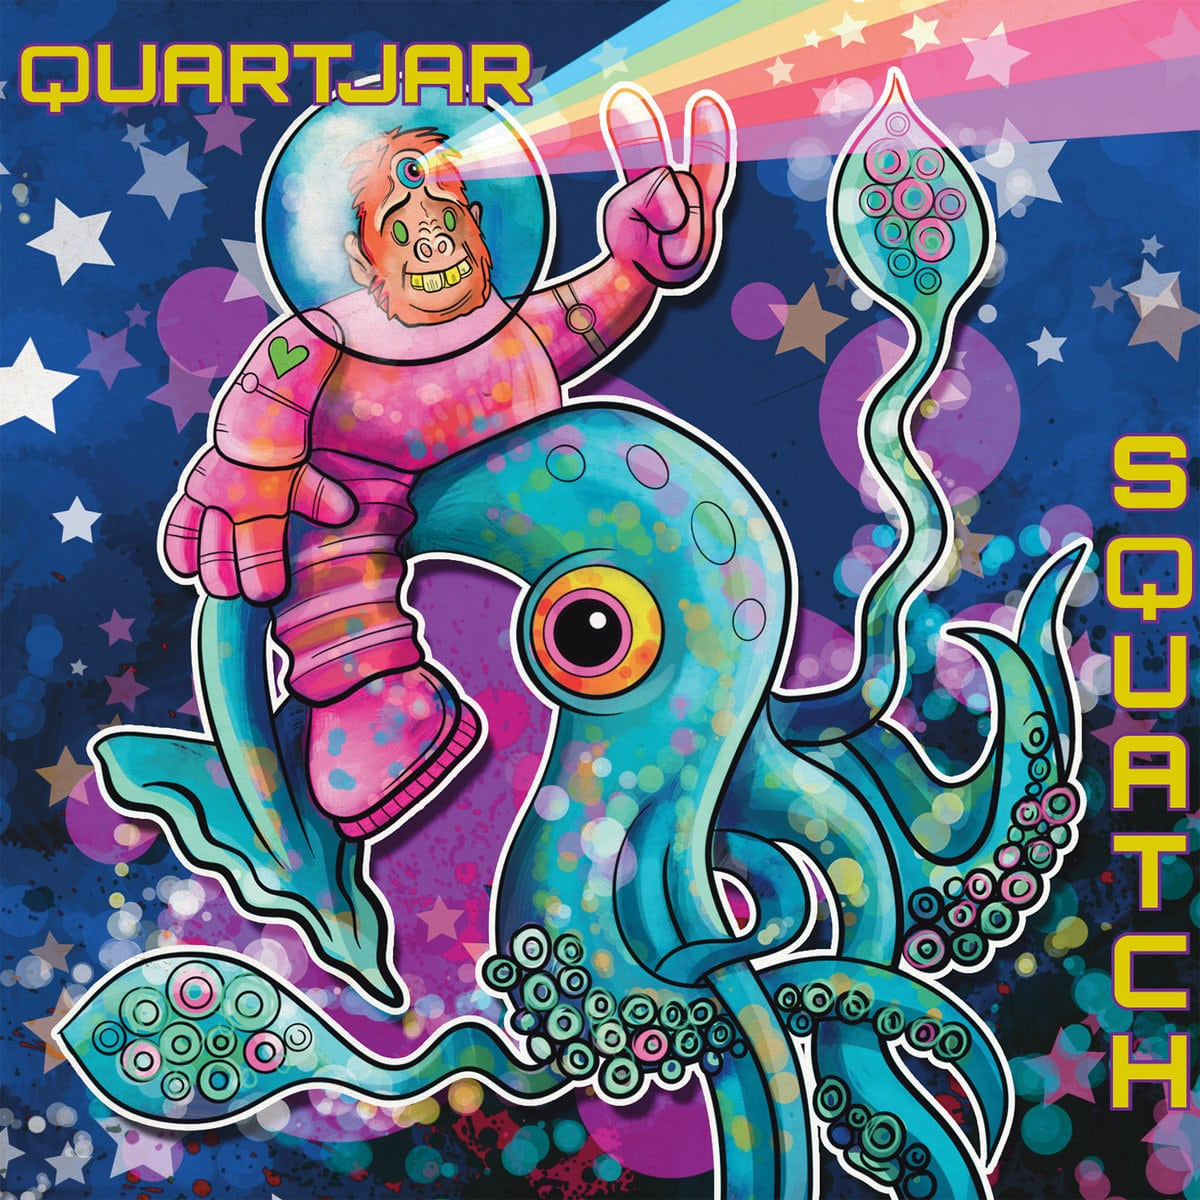 Episode 84 Record Store Day With Quartjar S Randall Brown